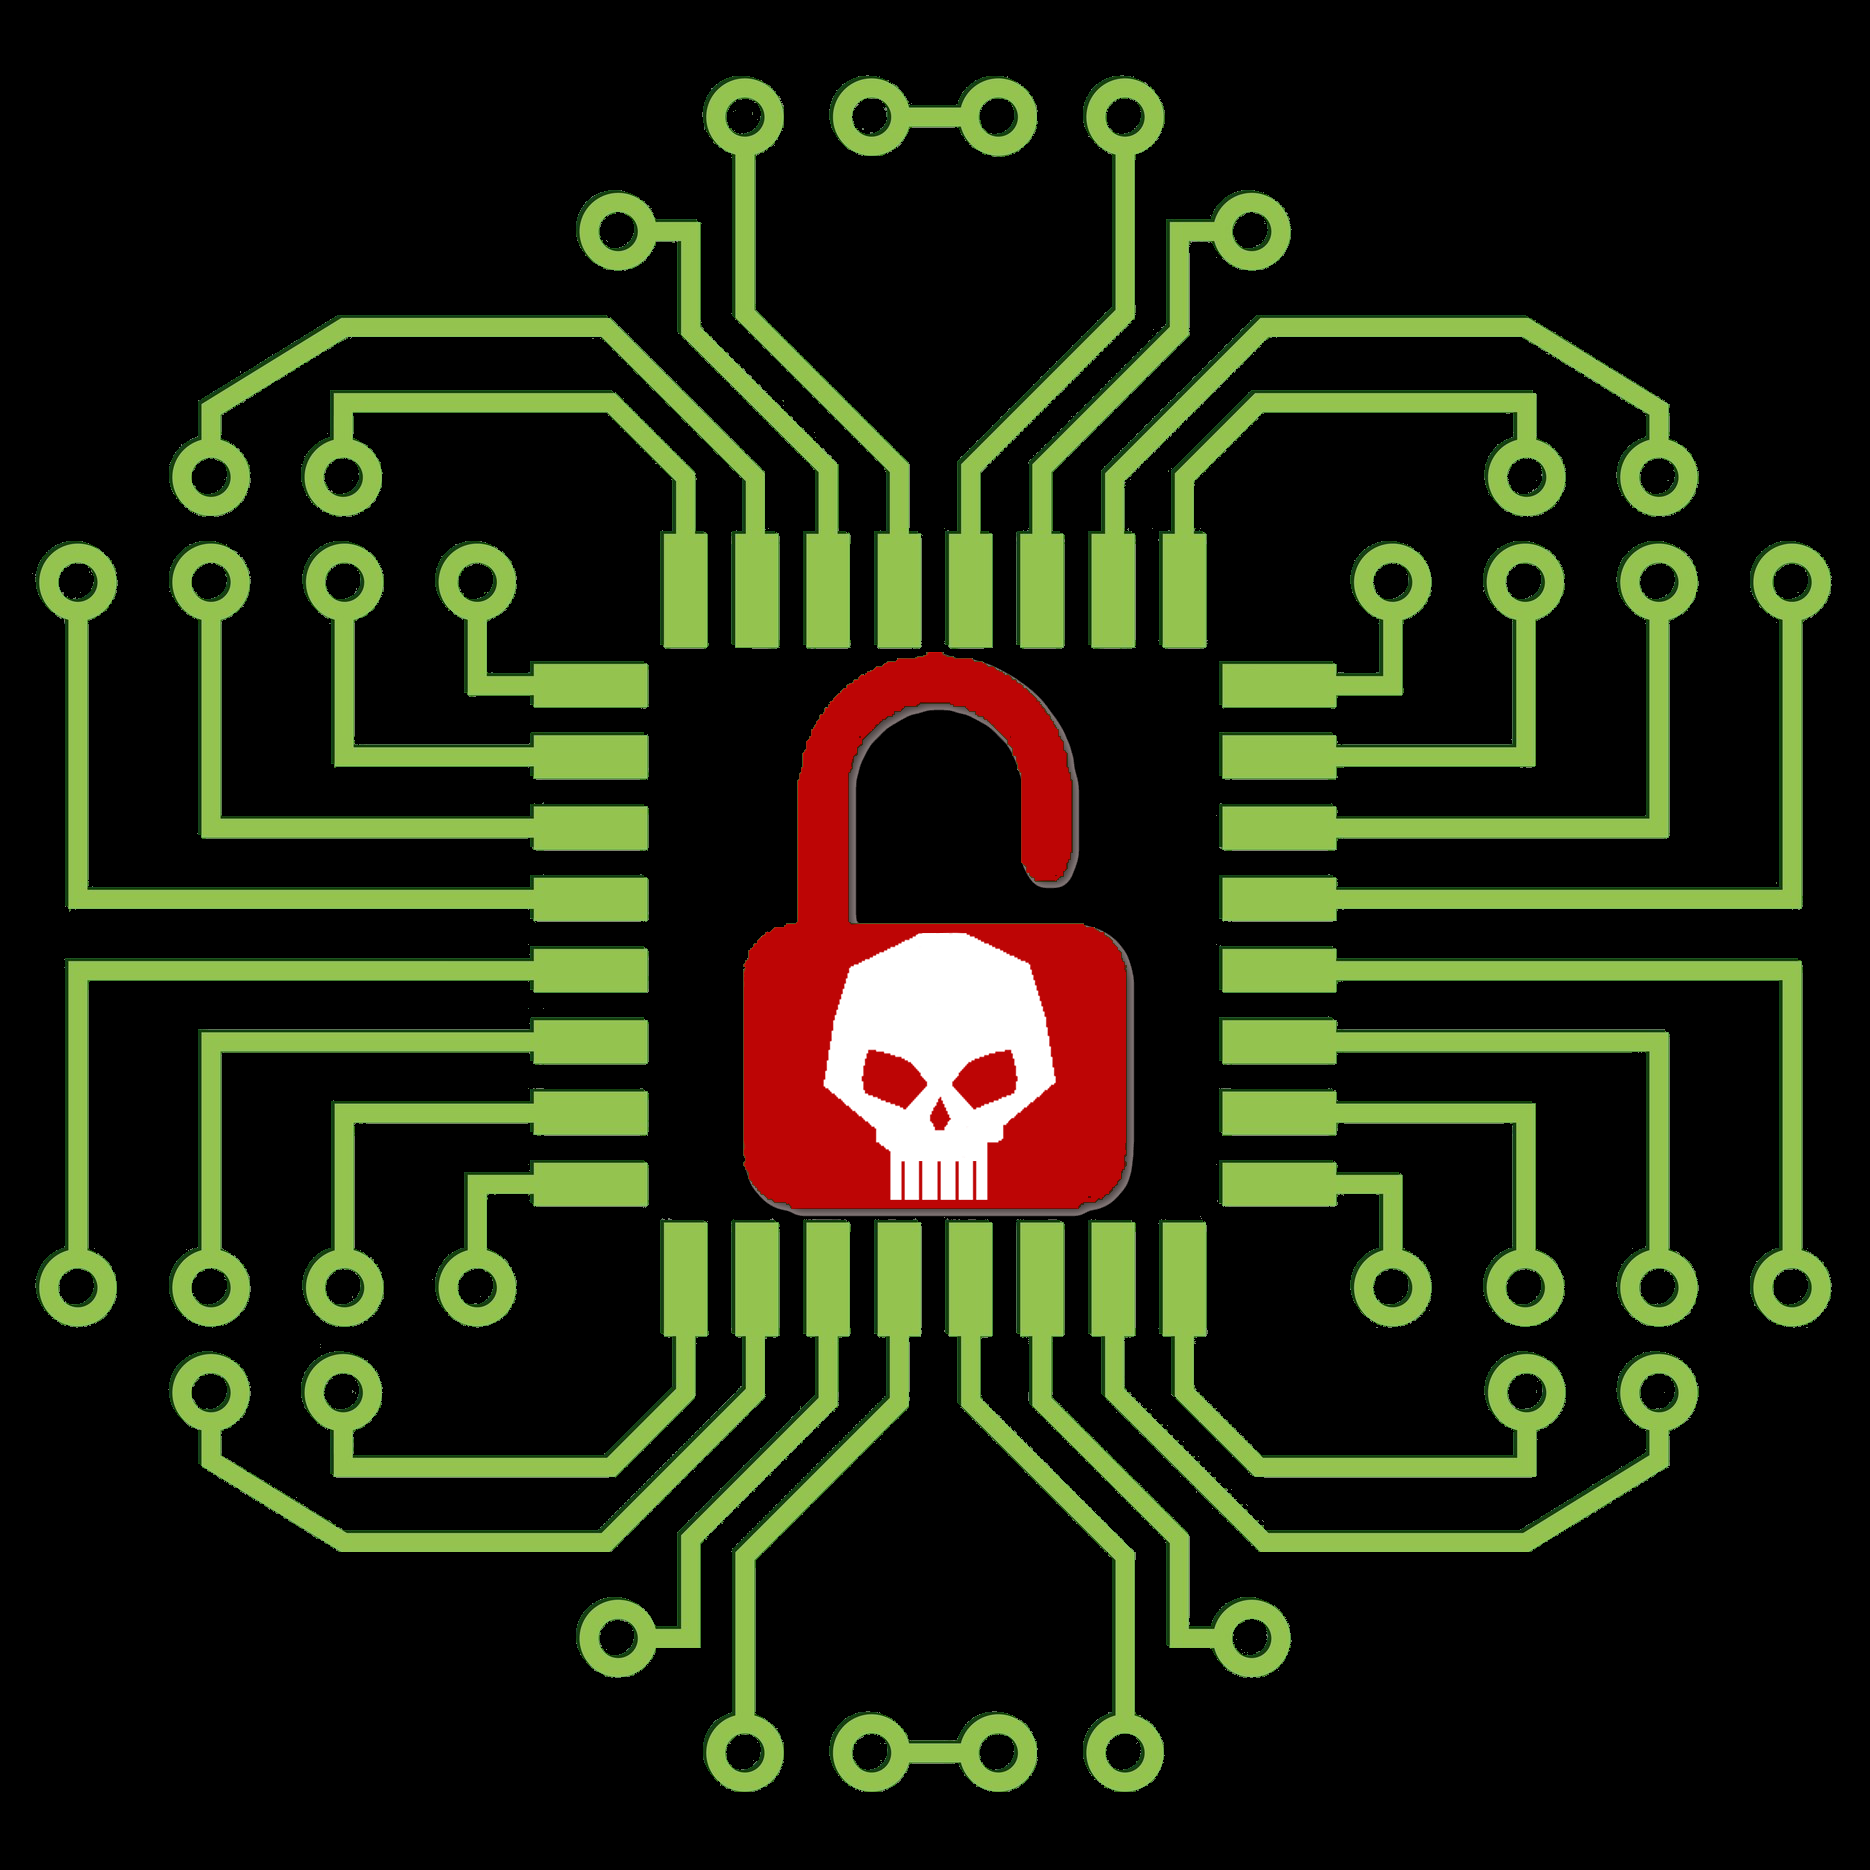 Cybersecurityv3.png